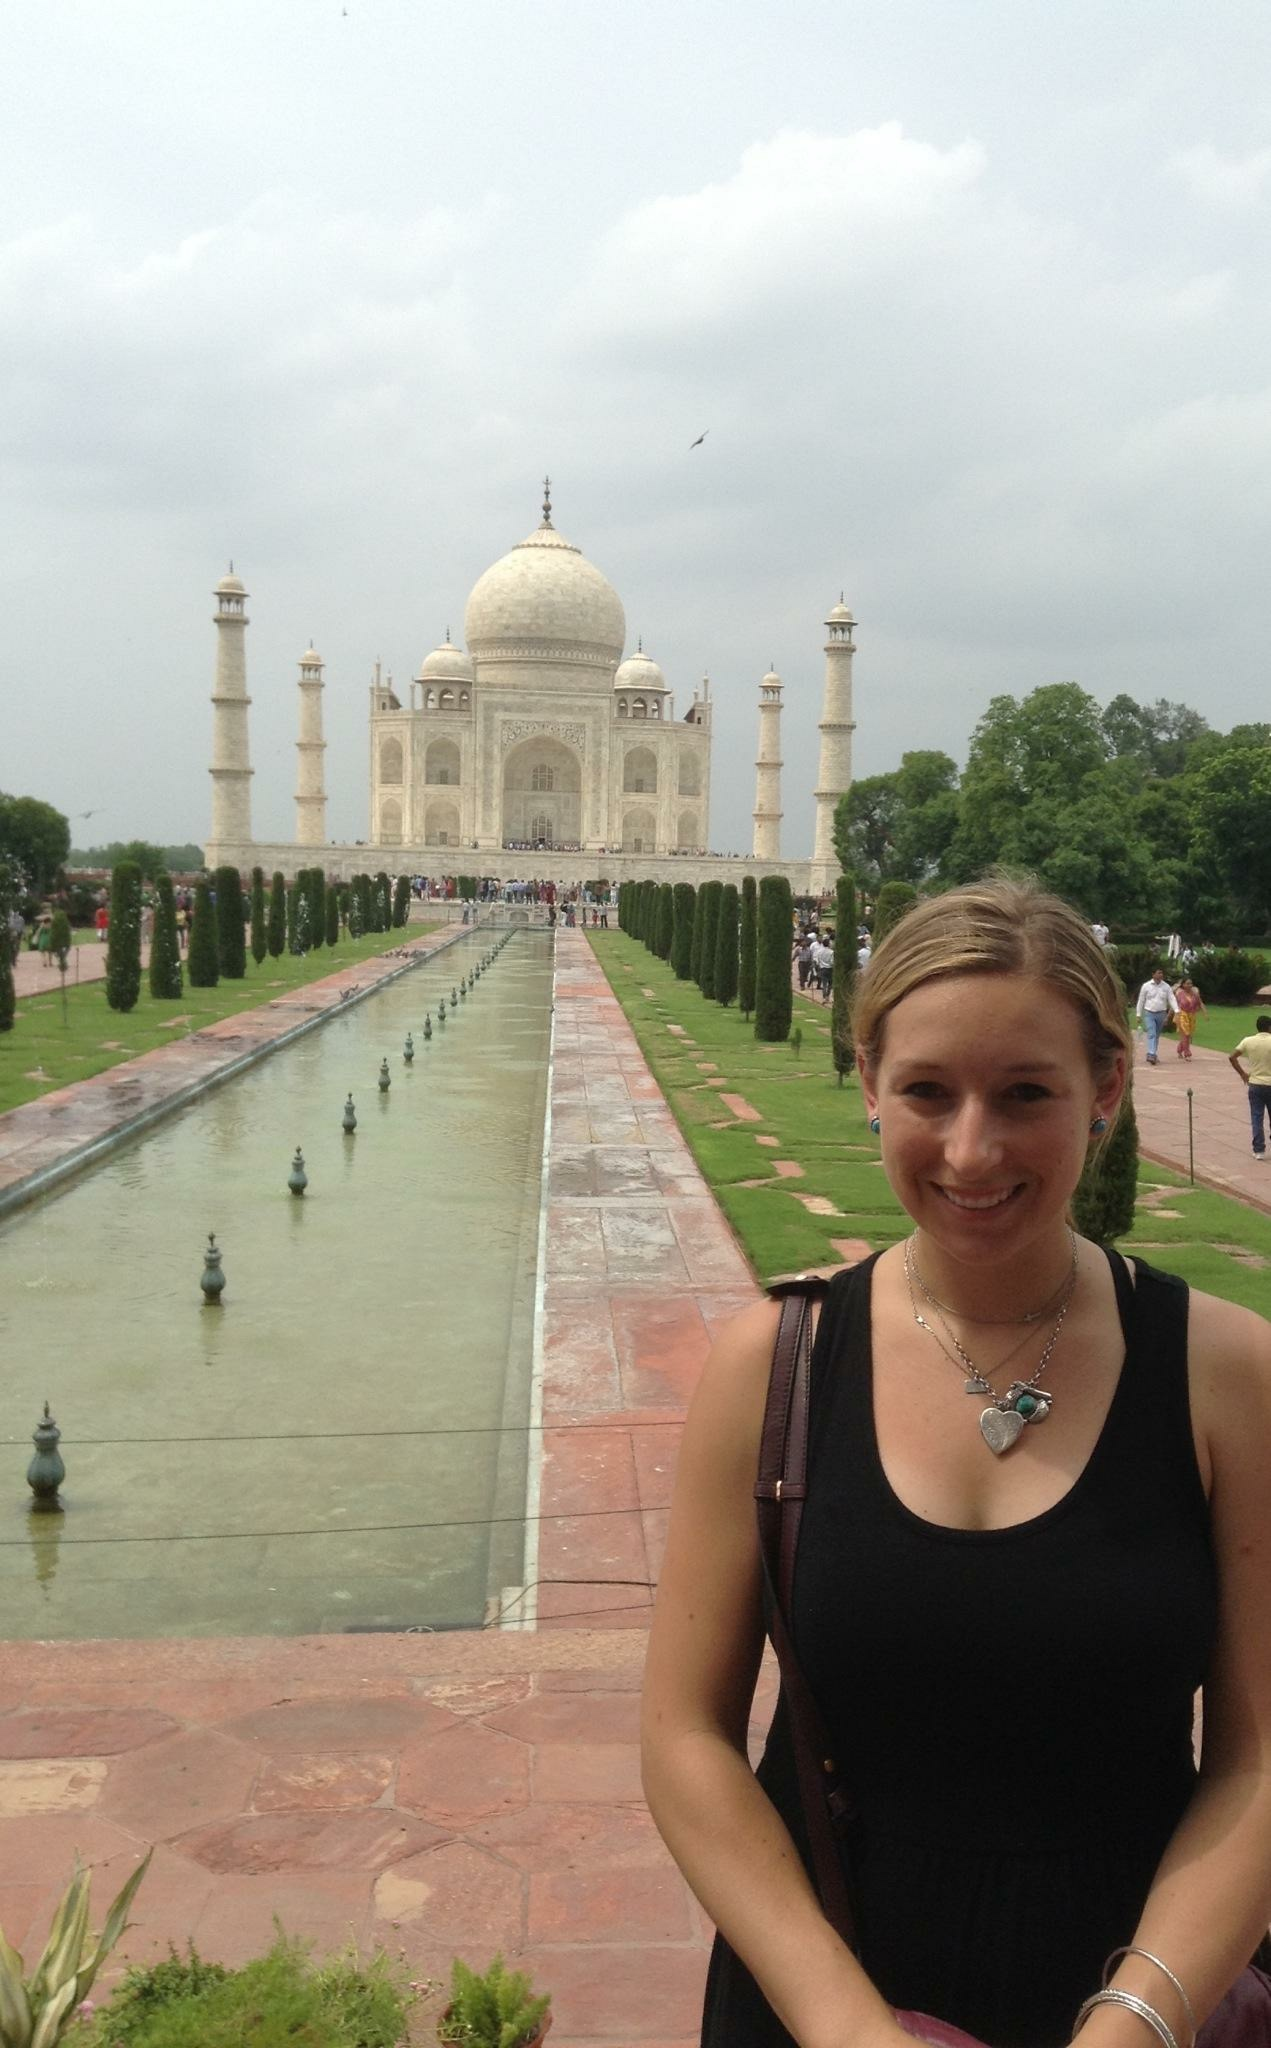 Sweating my ass off at the Taj Mahal in India. 2014